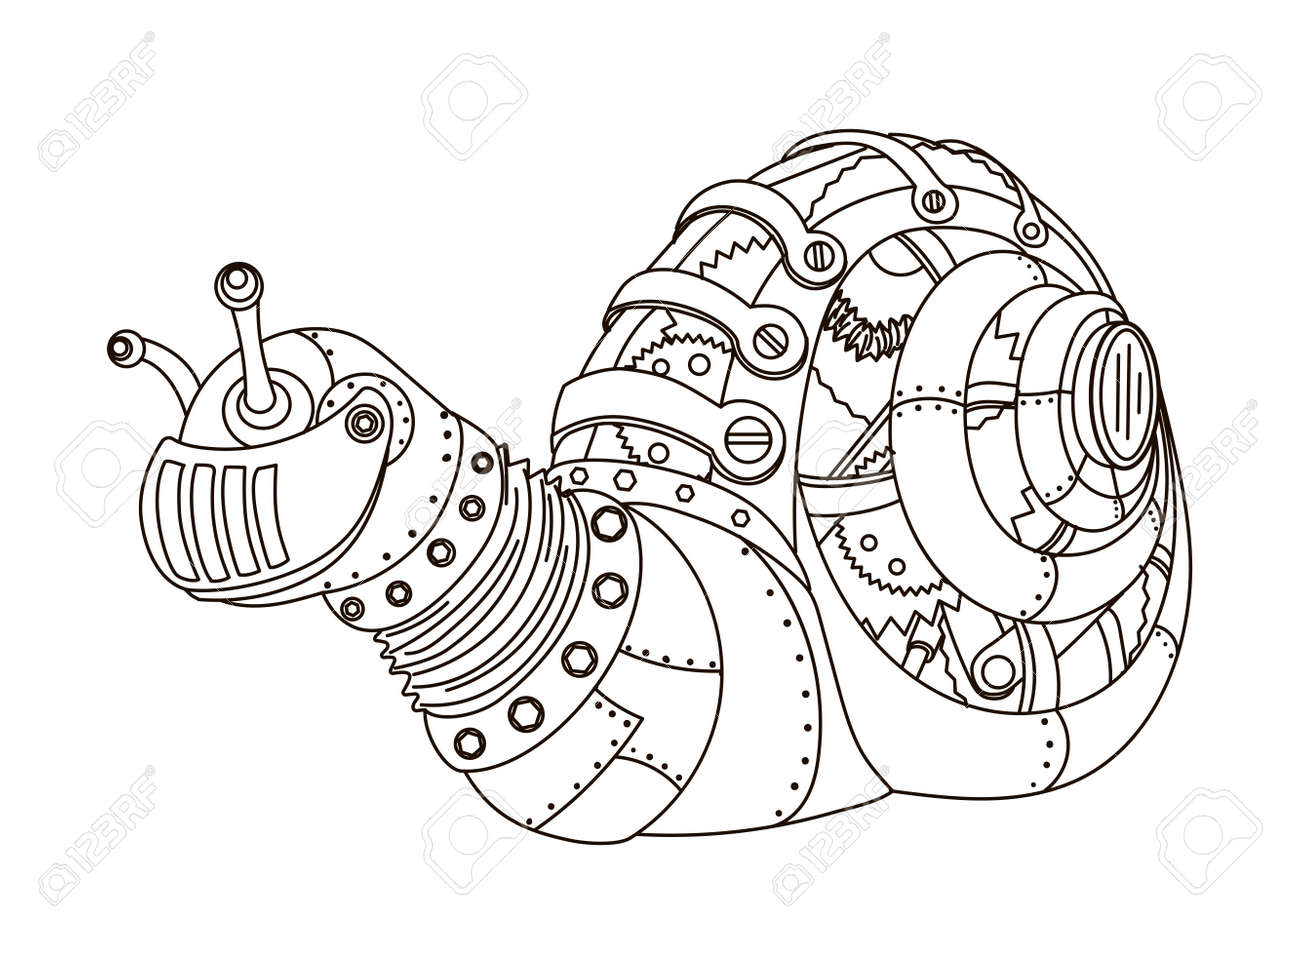 ste unk style snail mechanical animal coloring book for adult  ste unk style snail mechanical animal coloring book for adult vector illustration stock vector